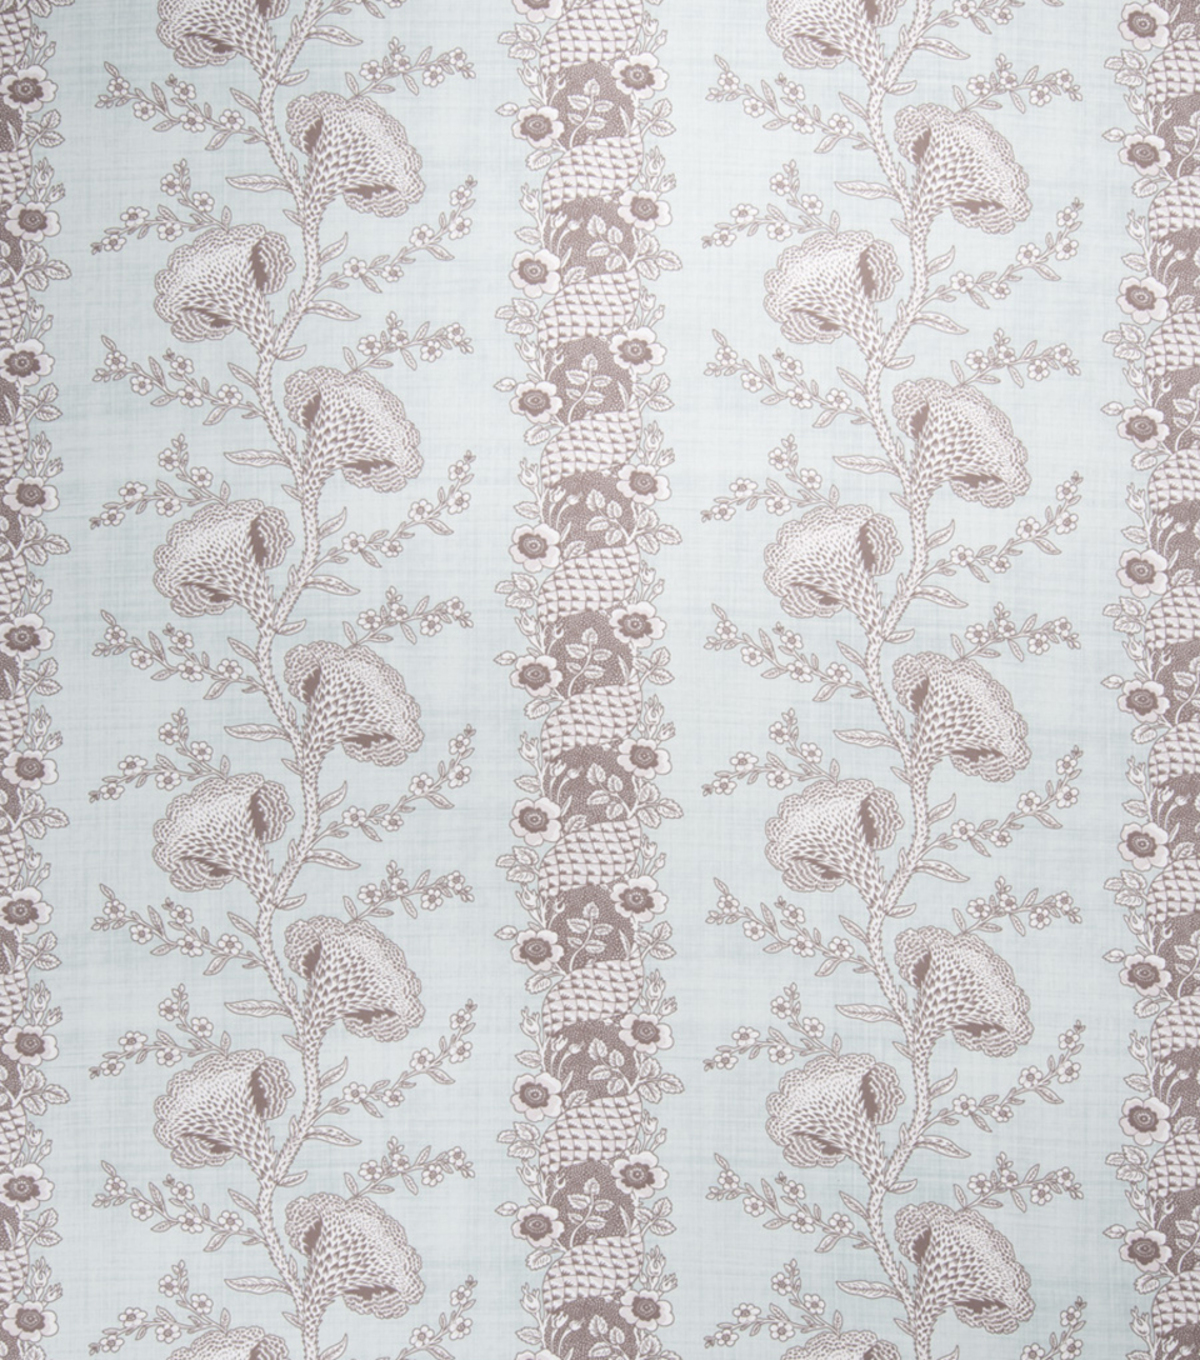 "Home Decor 8""x8"" Fabric Swatch-Upholstery Fabric Eaton Square Garland Robin"